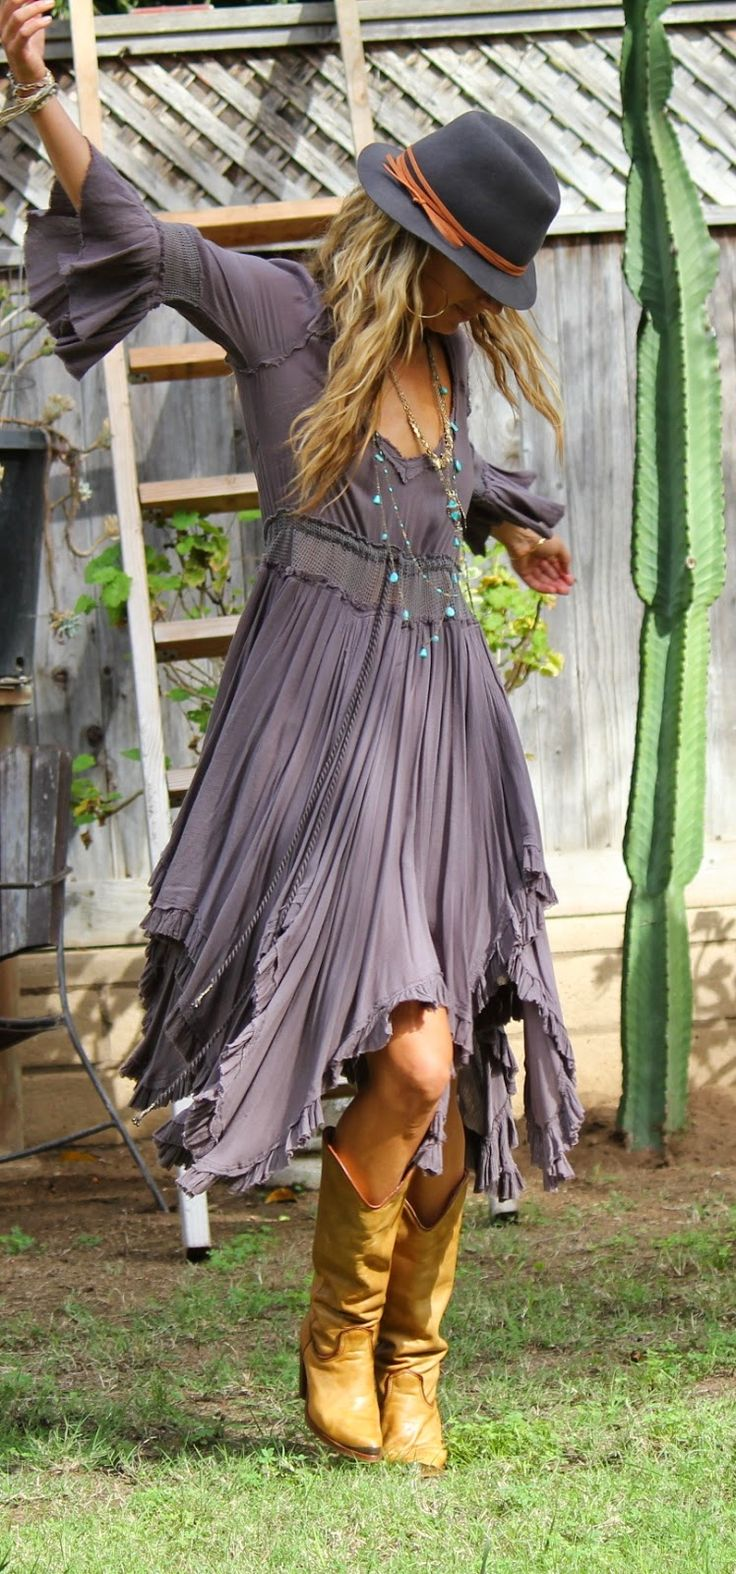 Love this dress and the boot combo. So cute!: Boho Fall Outfit, Bohemian Style Outfit, Gypsy Outfit, Bohemian Outfit, Bohemian Fall Outfit, Boho Dress